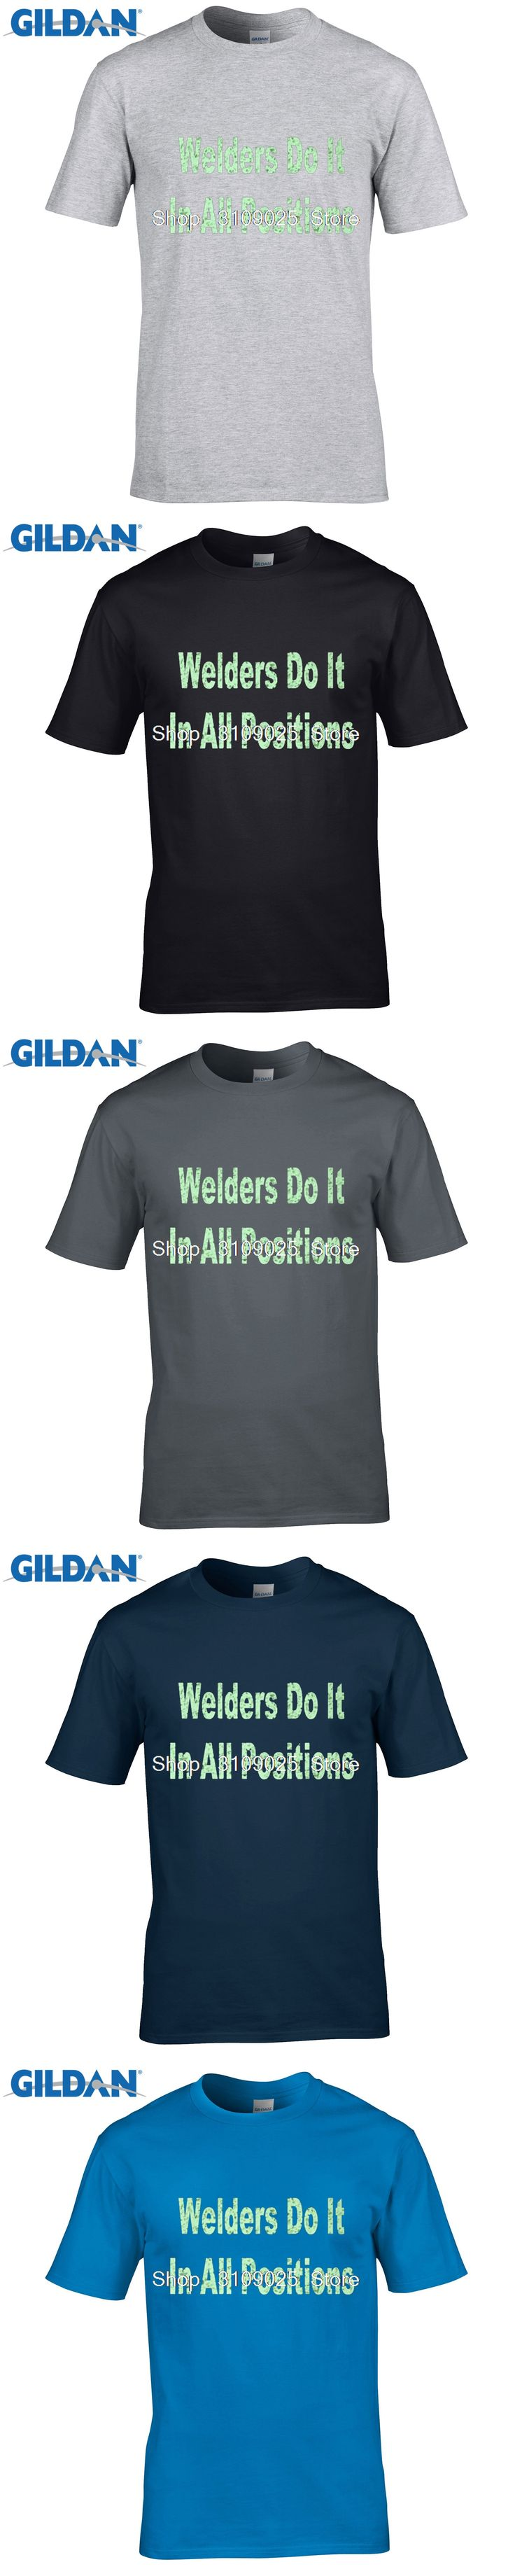 GILDAN Welders do it in all positions Man T Shirt Cotton Short Sleeve Crew Neck Tshirt Man's Clothes  On Sale T-shirt For Guy